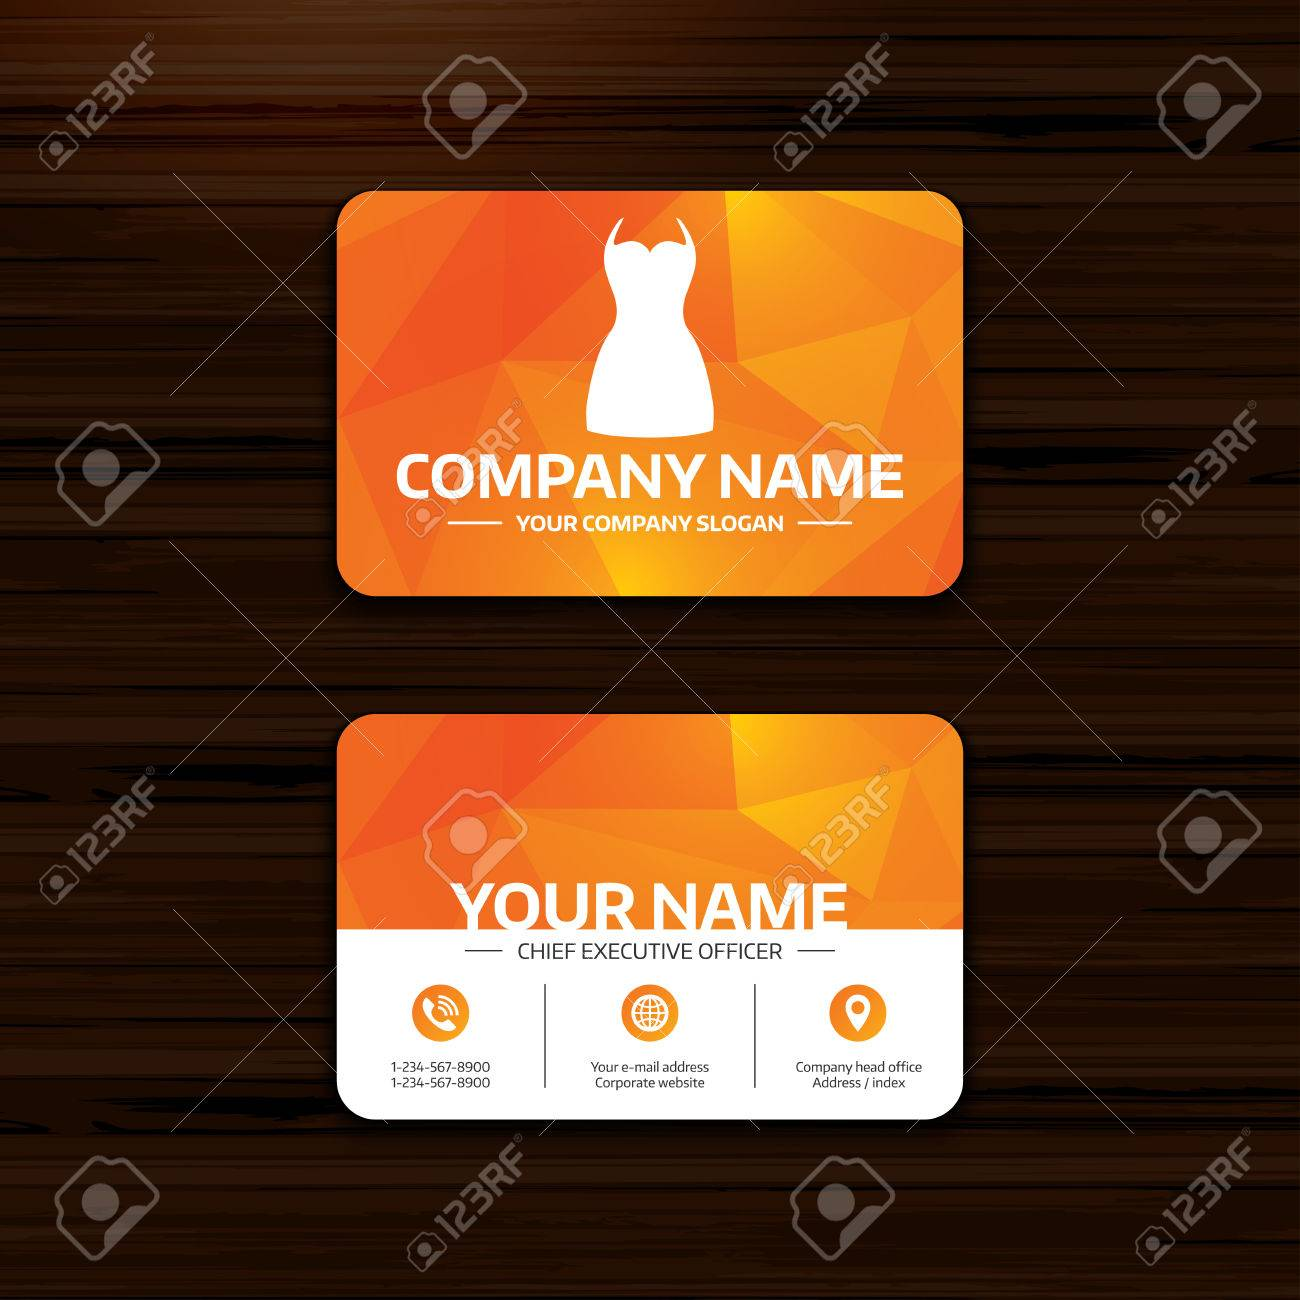 Office business card templates free mandegarfo office business card templates free cheaphphosting Images